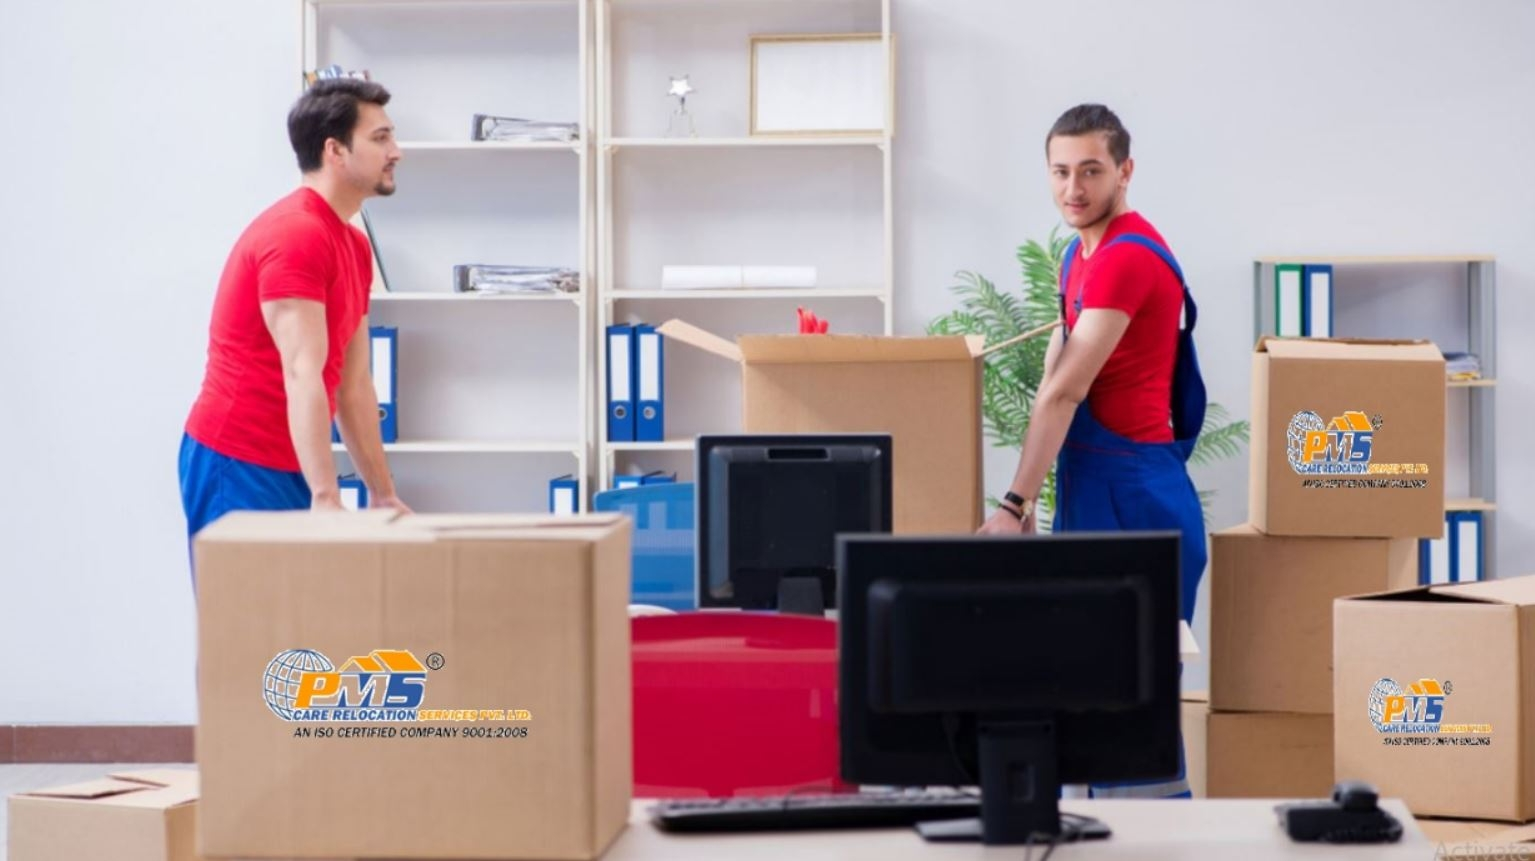 PMS Care Relocation Packers and Movers Pune (@pmscarerelocationpackersandmoverspune) Cover Image